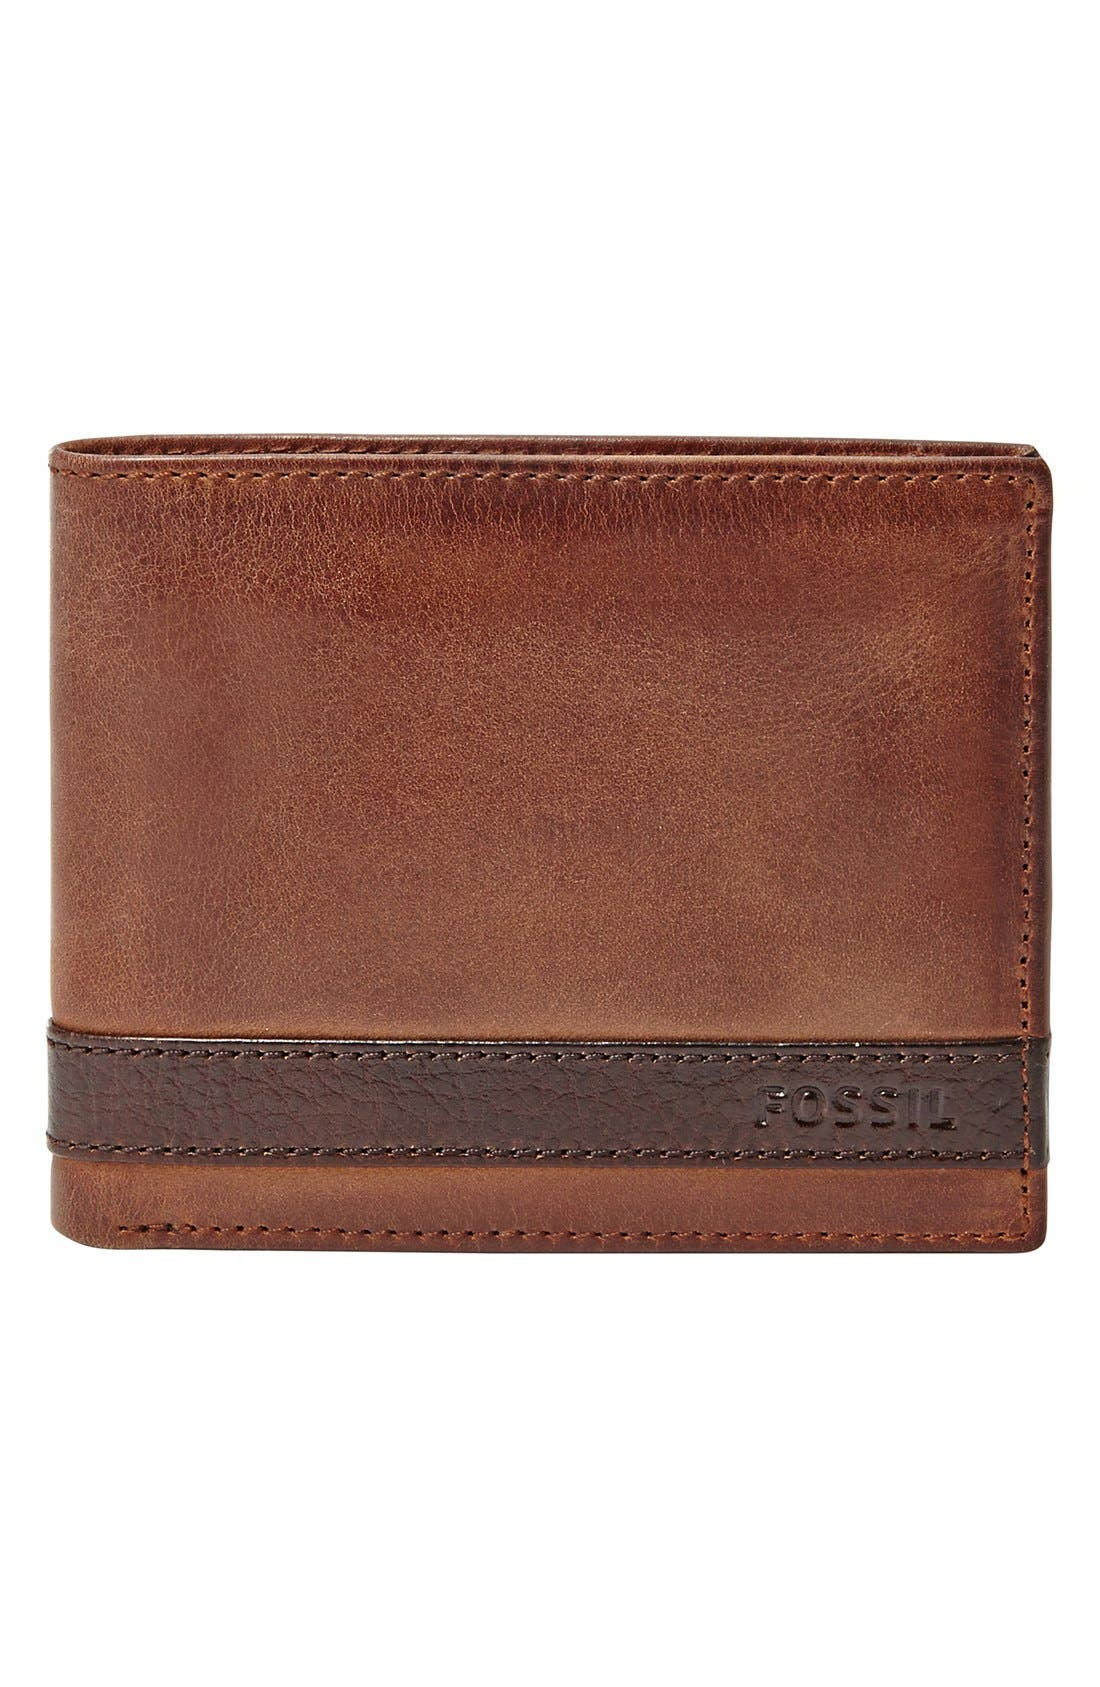 Fossil 'Quinn' Leather Bifold Wallet